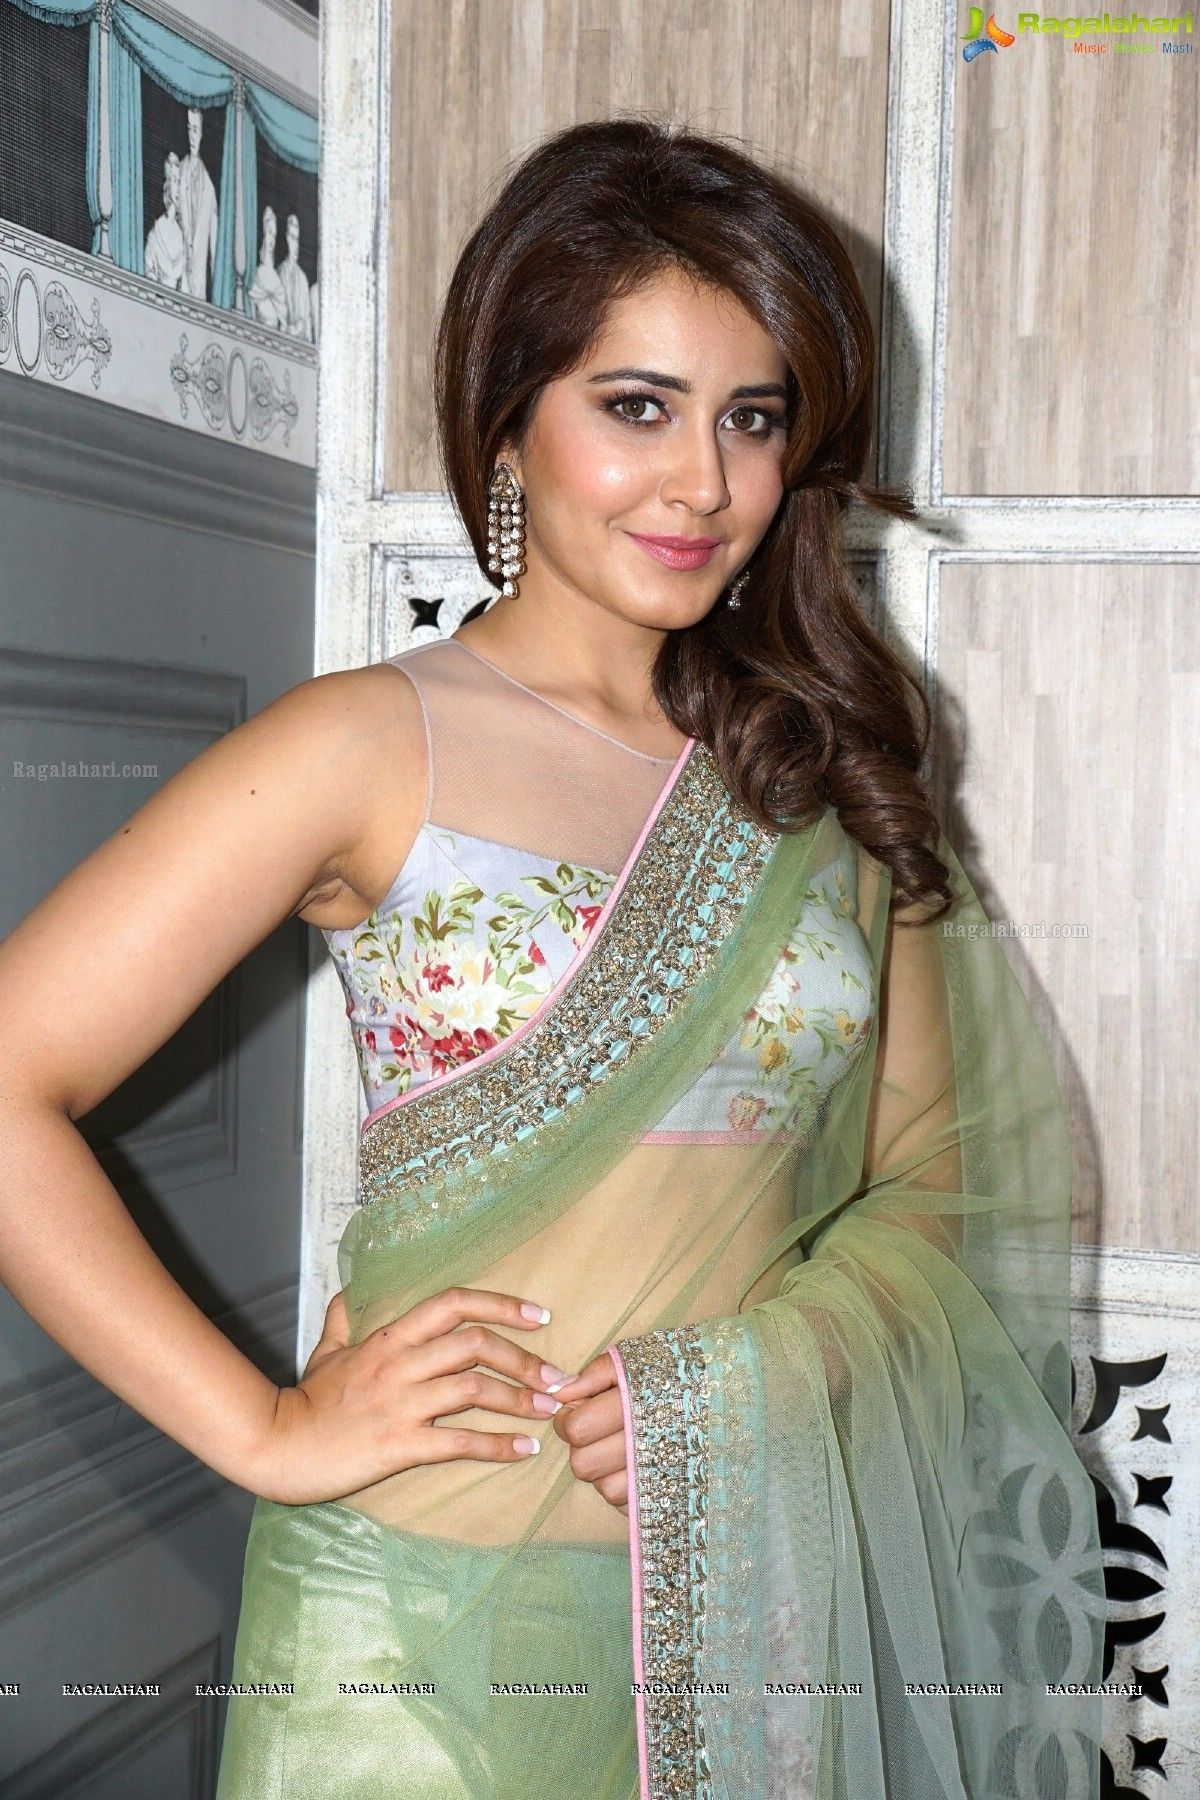 ba3d3db914b1ef Rashi Khanna Hot In Low Hip Transparent Saree & Sleeveless blouse ...